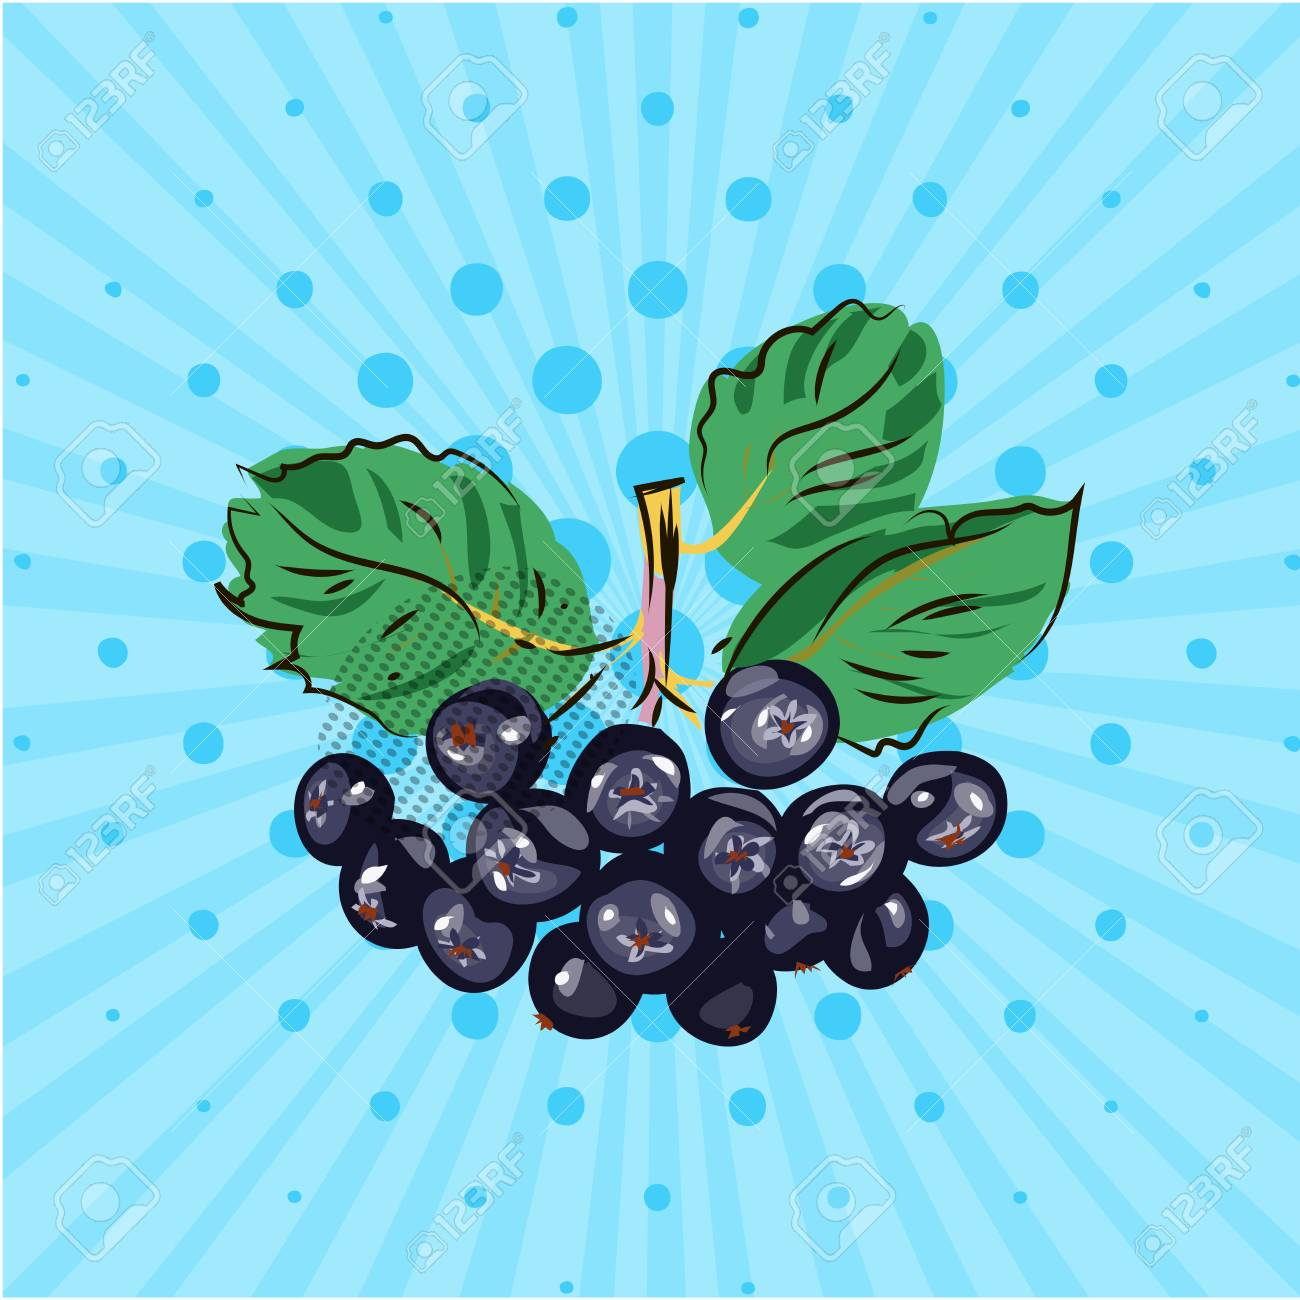 Hanging bundle of chokeberry on a blue background,lines,dots.Hand made in the style of pop art.Vector illustration.Eco - 95084027